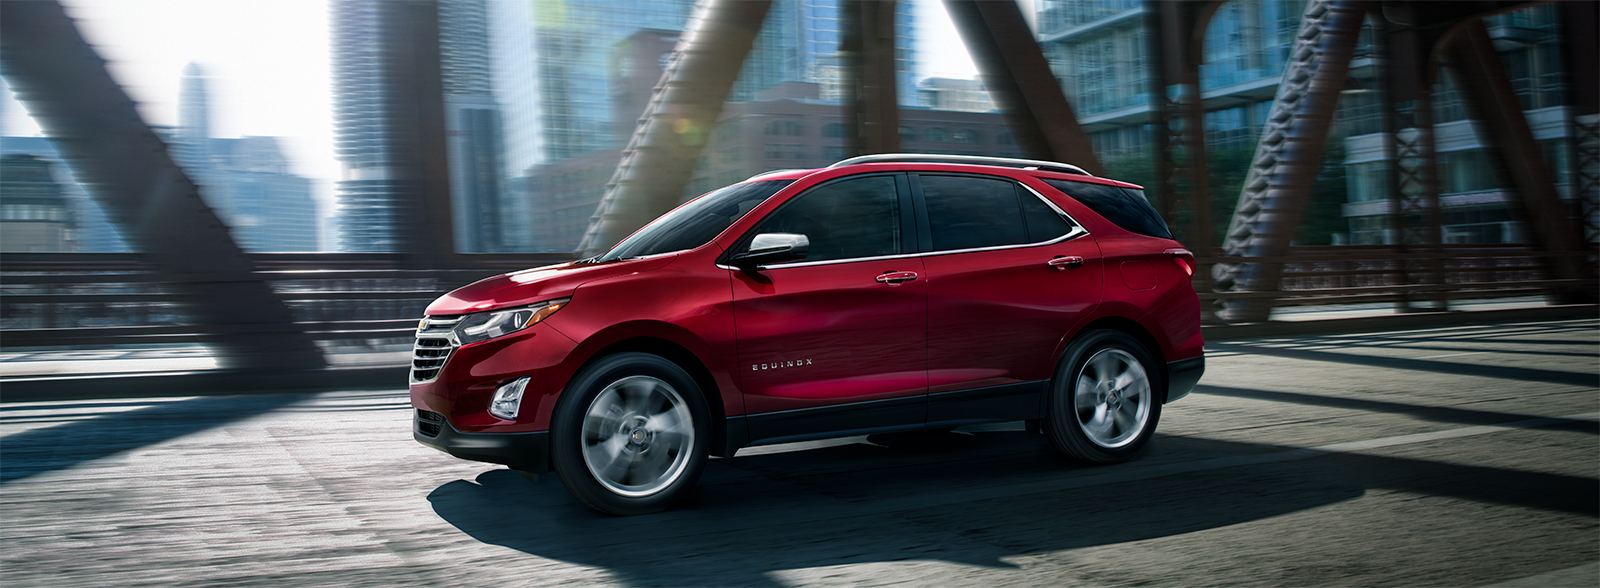 Blossom Chevrolet Is A Indianapolis Chevrolet Dealer And A